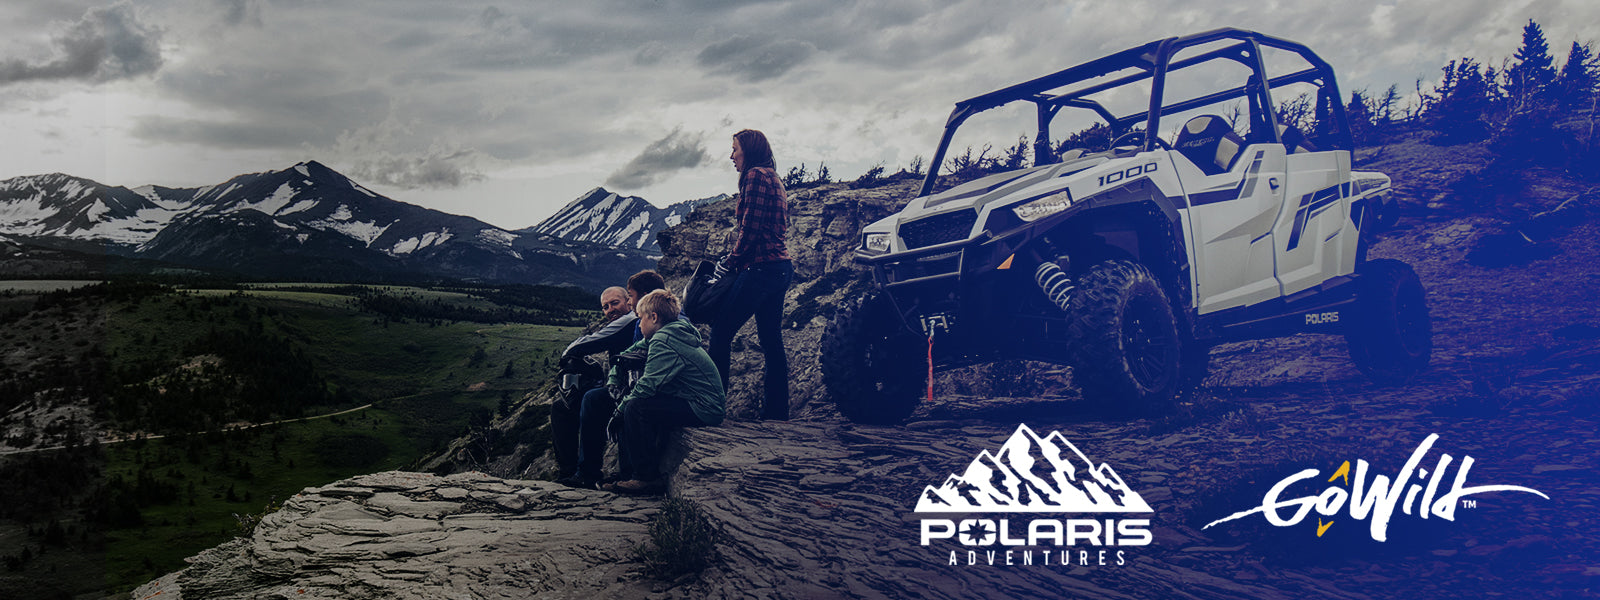 Polaris Adventures Launches Strategic Partnership with Outdoor App, GoWild